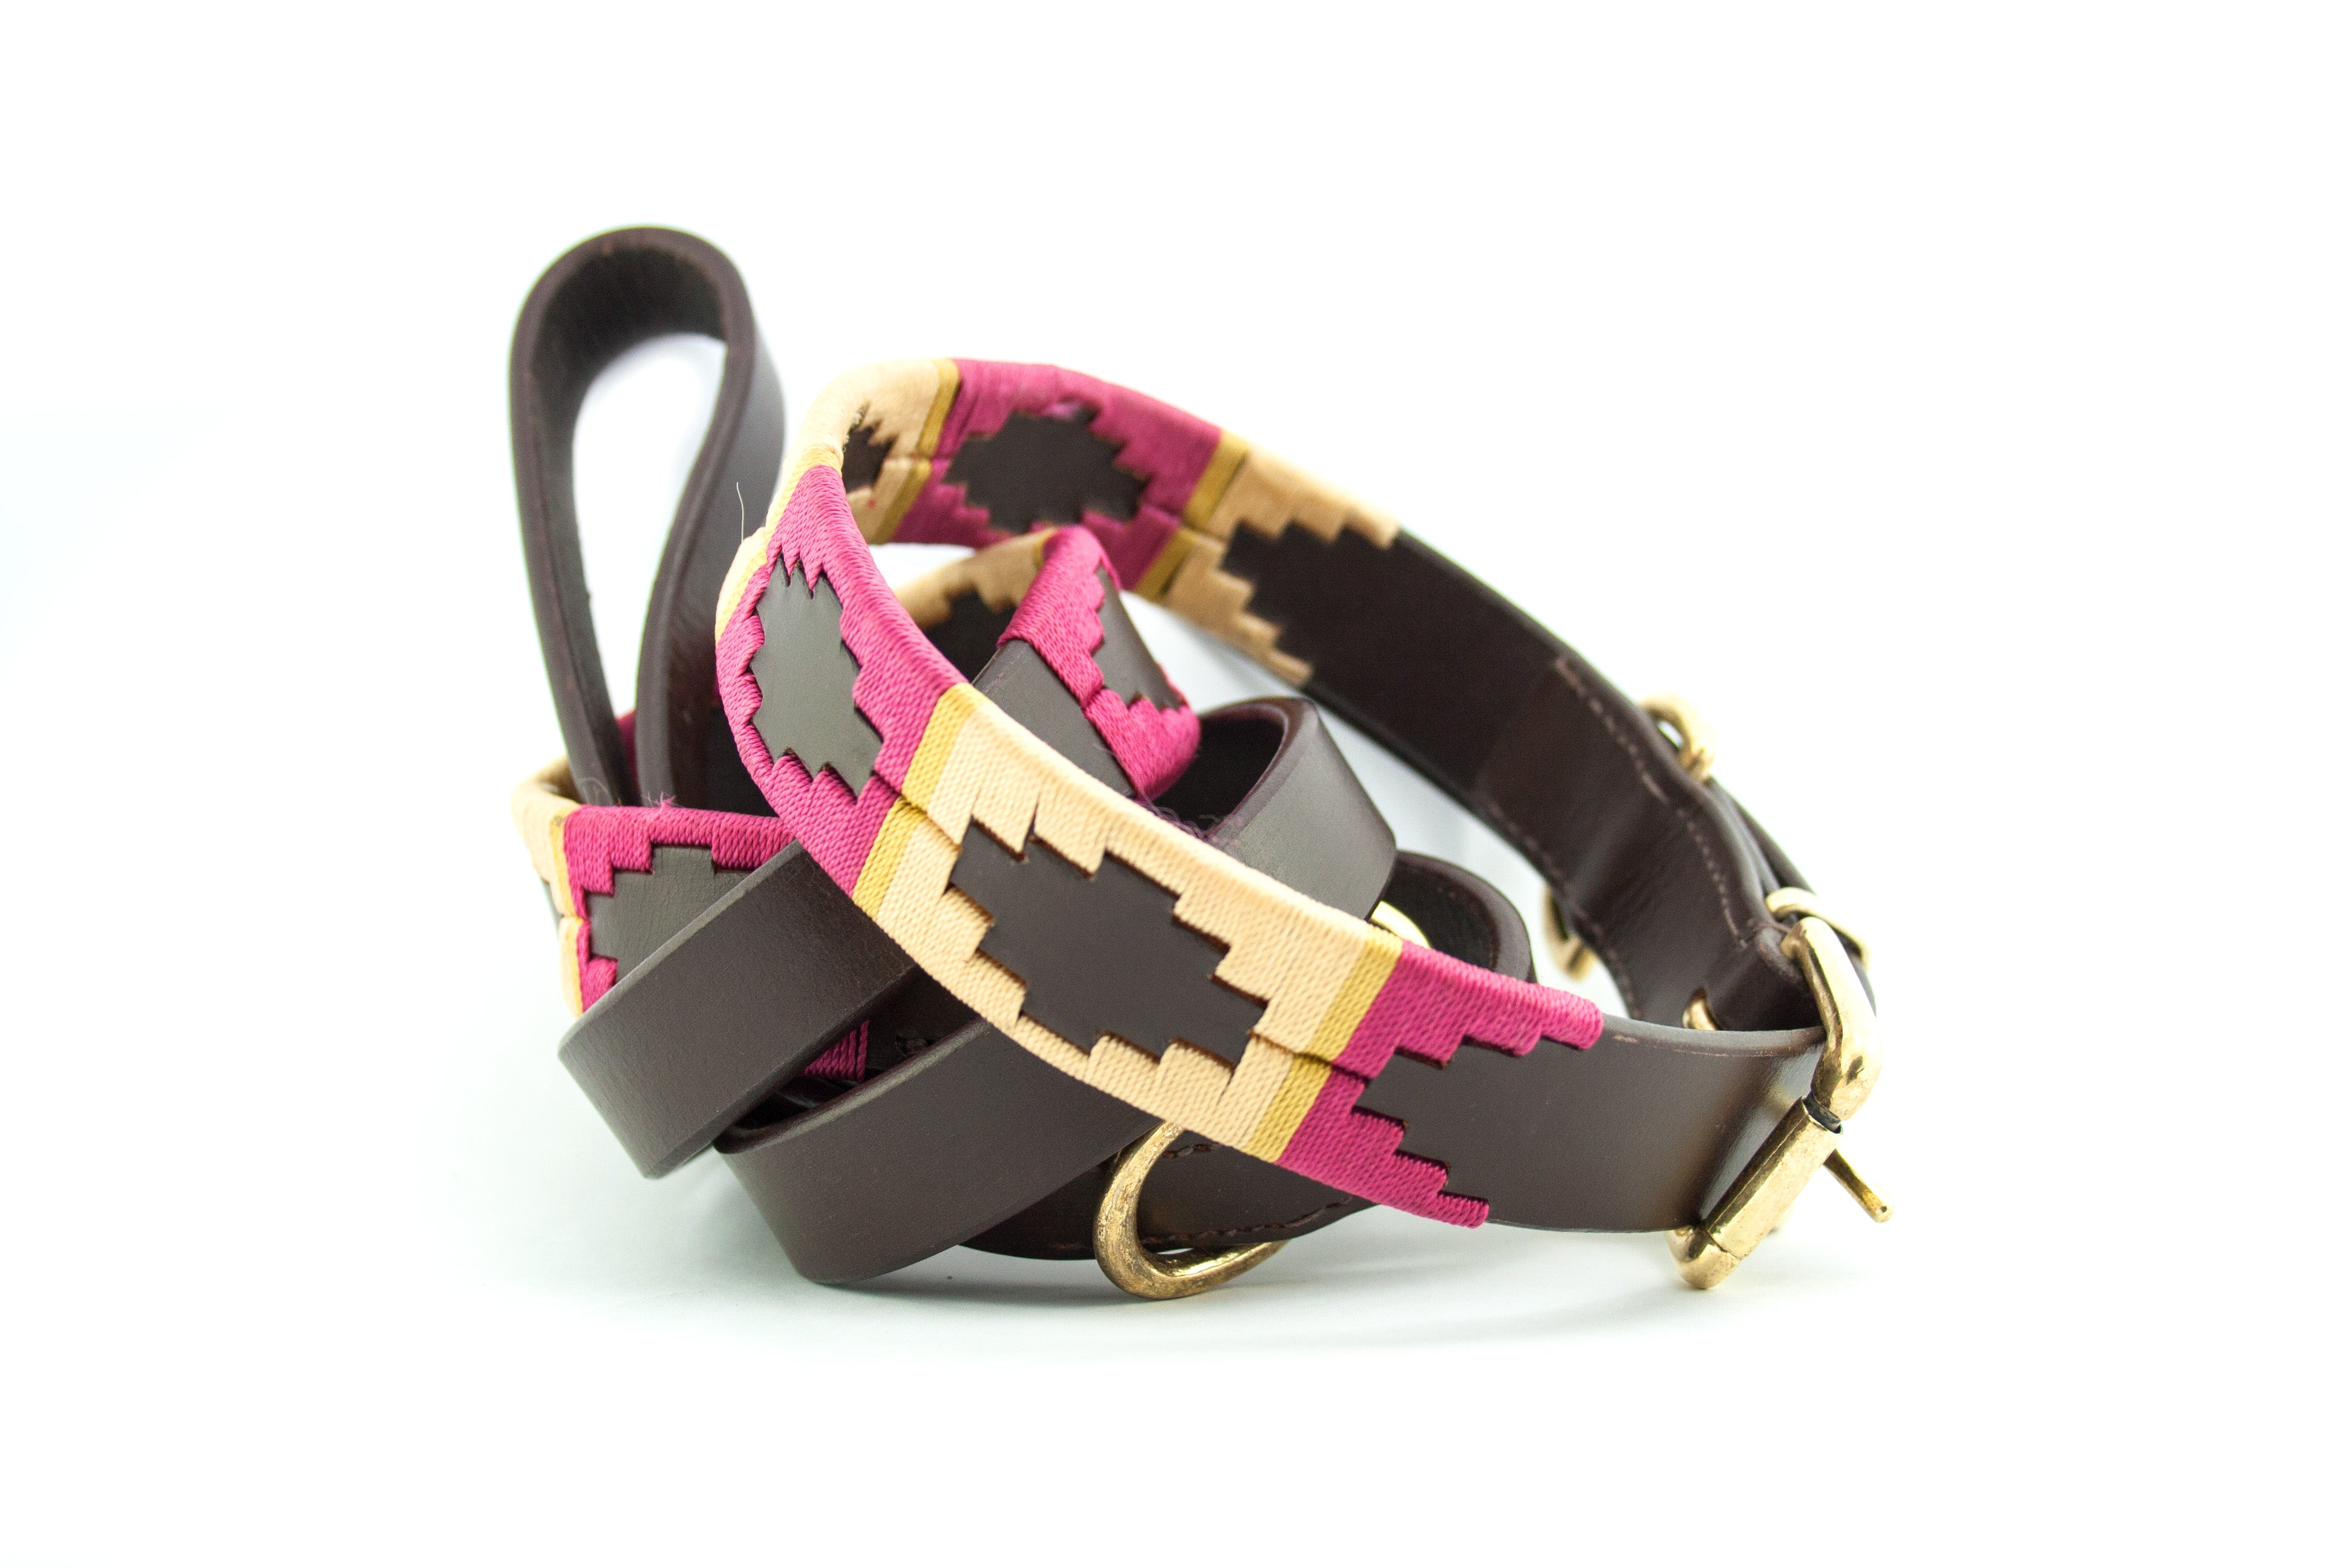 Leather and embroidery 'GAUCHO POLO' Style Dog Lead RASPBERRY OCHRE